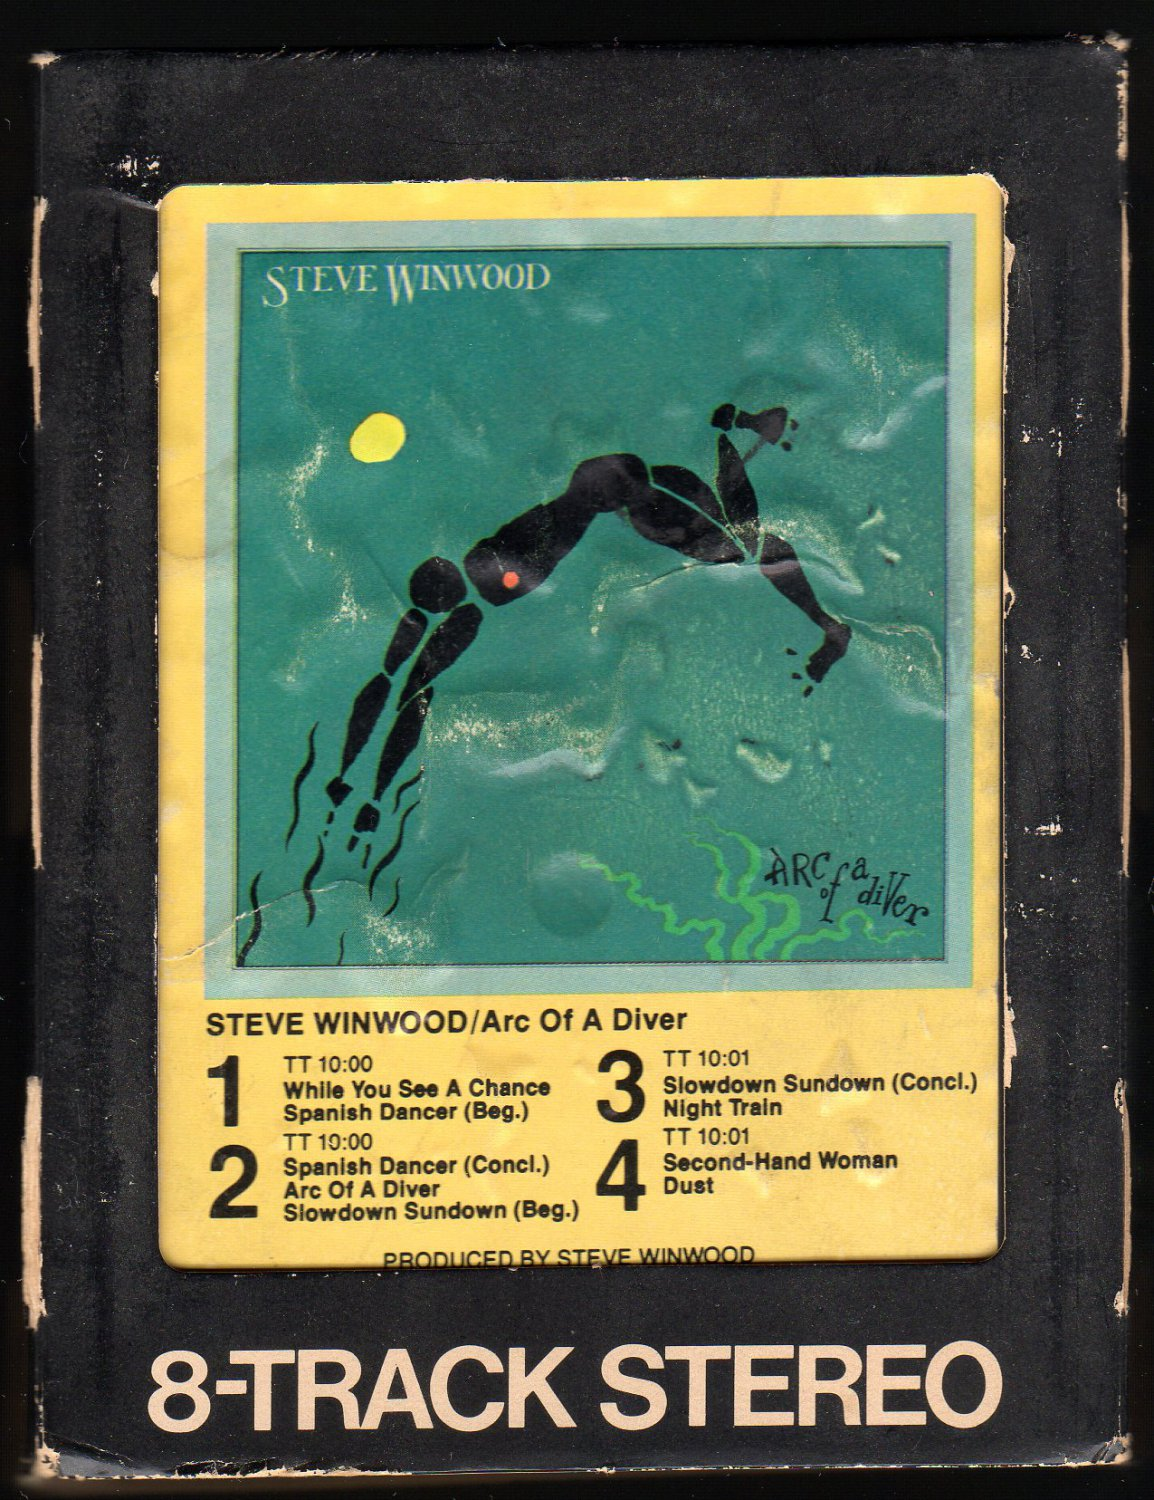 Steve Winwood - Arc Of A Diver 1980 WB A52 8-TRACK TAPE